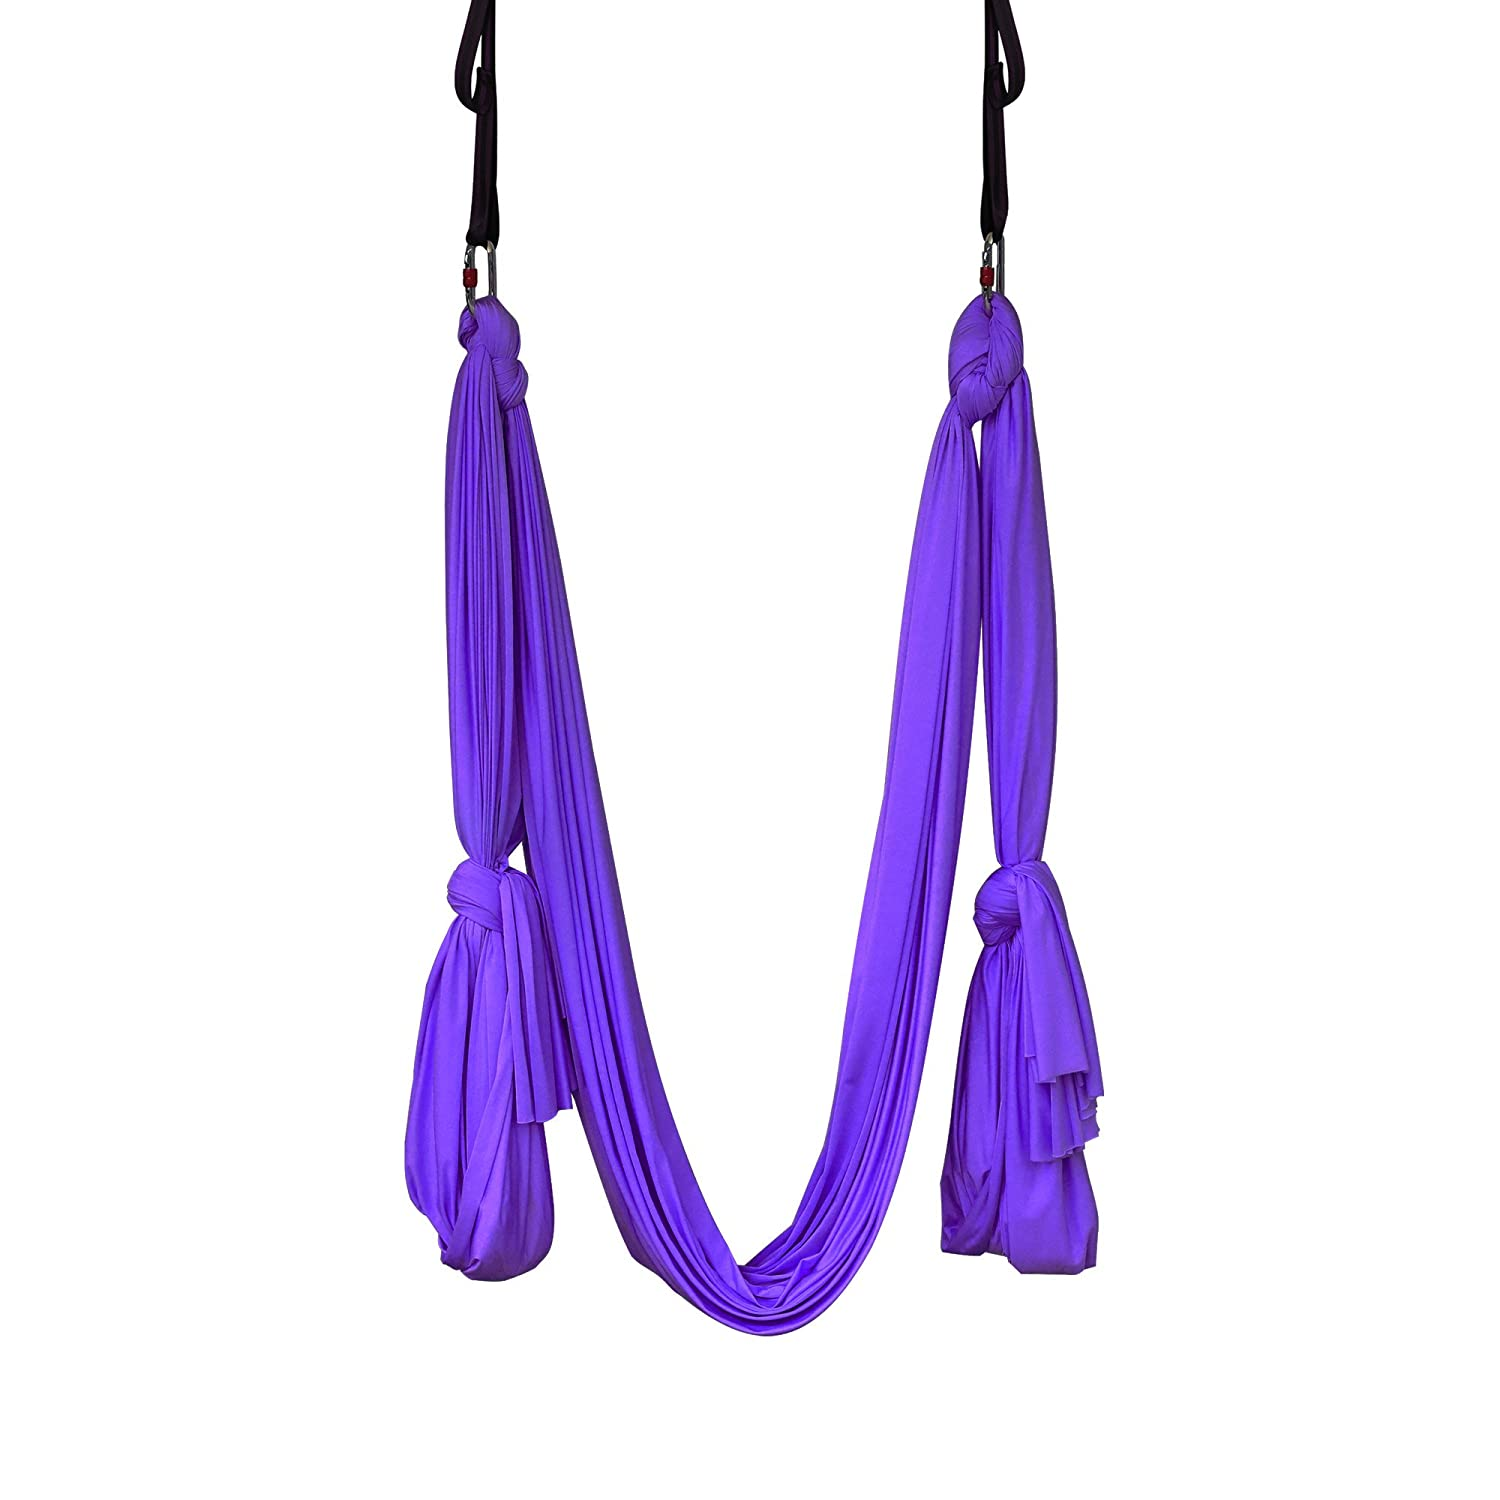 amazon     yoga hammock aerial kit extra long studio quality flying silk premium safe set includes hardware daisy chains and guide by kurma  purple      amazon     yoga hammock aerial kit extra long studio quality      rh   amazon